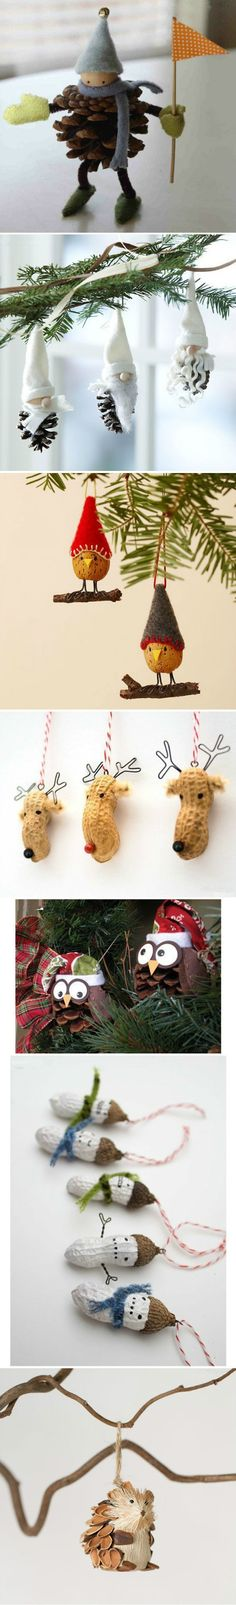 Various ideas for using nuts in the winter as decoration.   #DIY #christmas #rudolph #fun